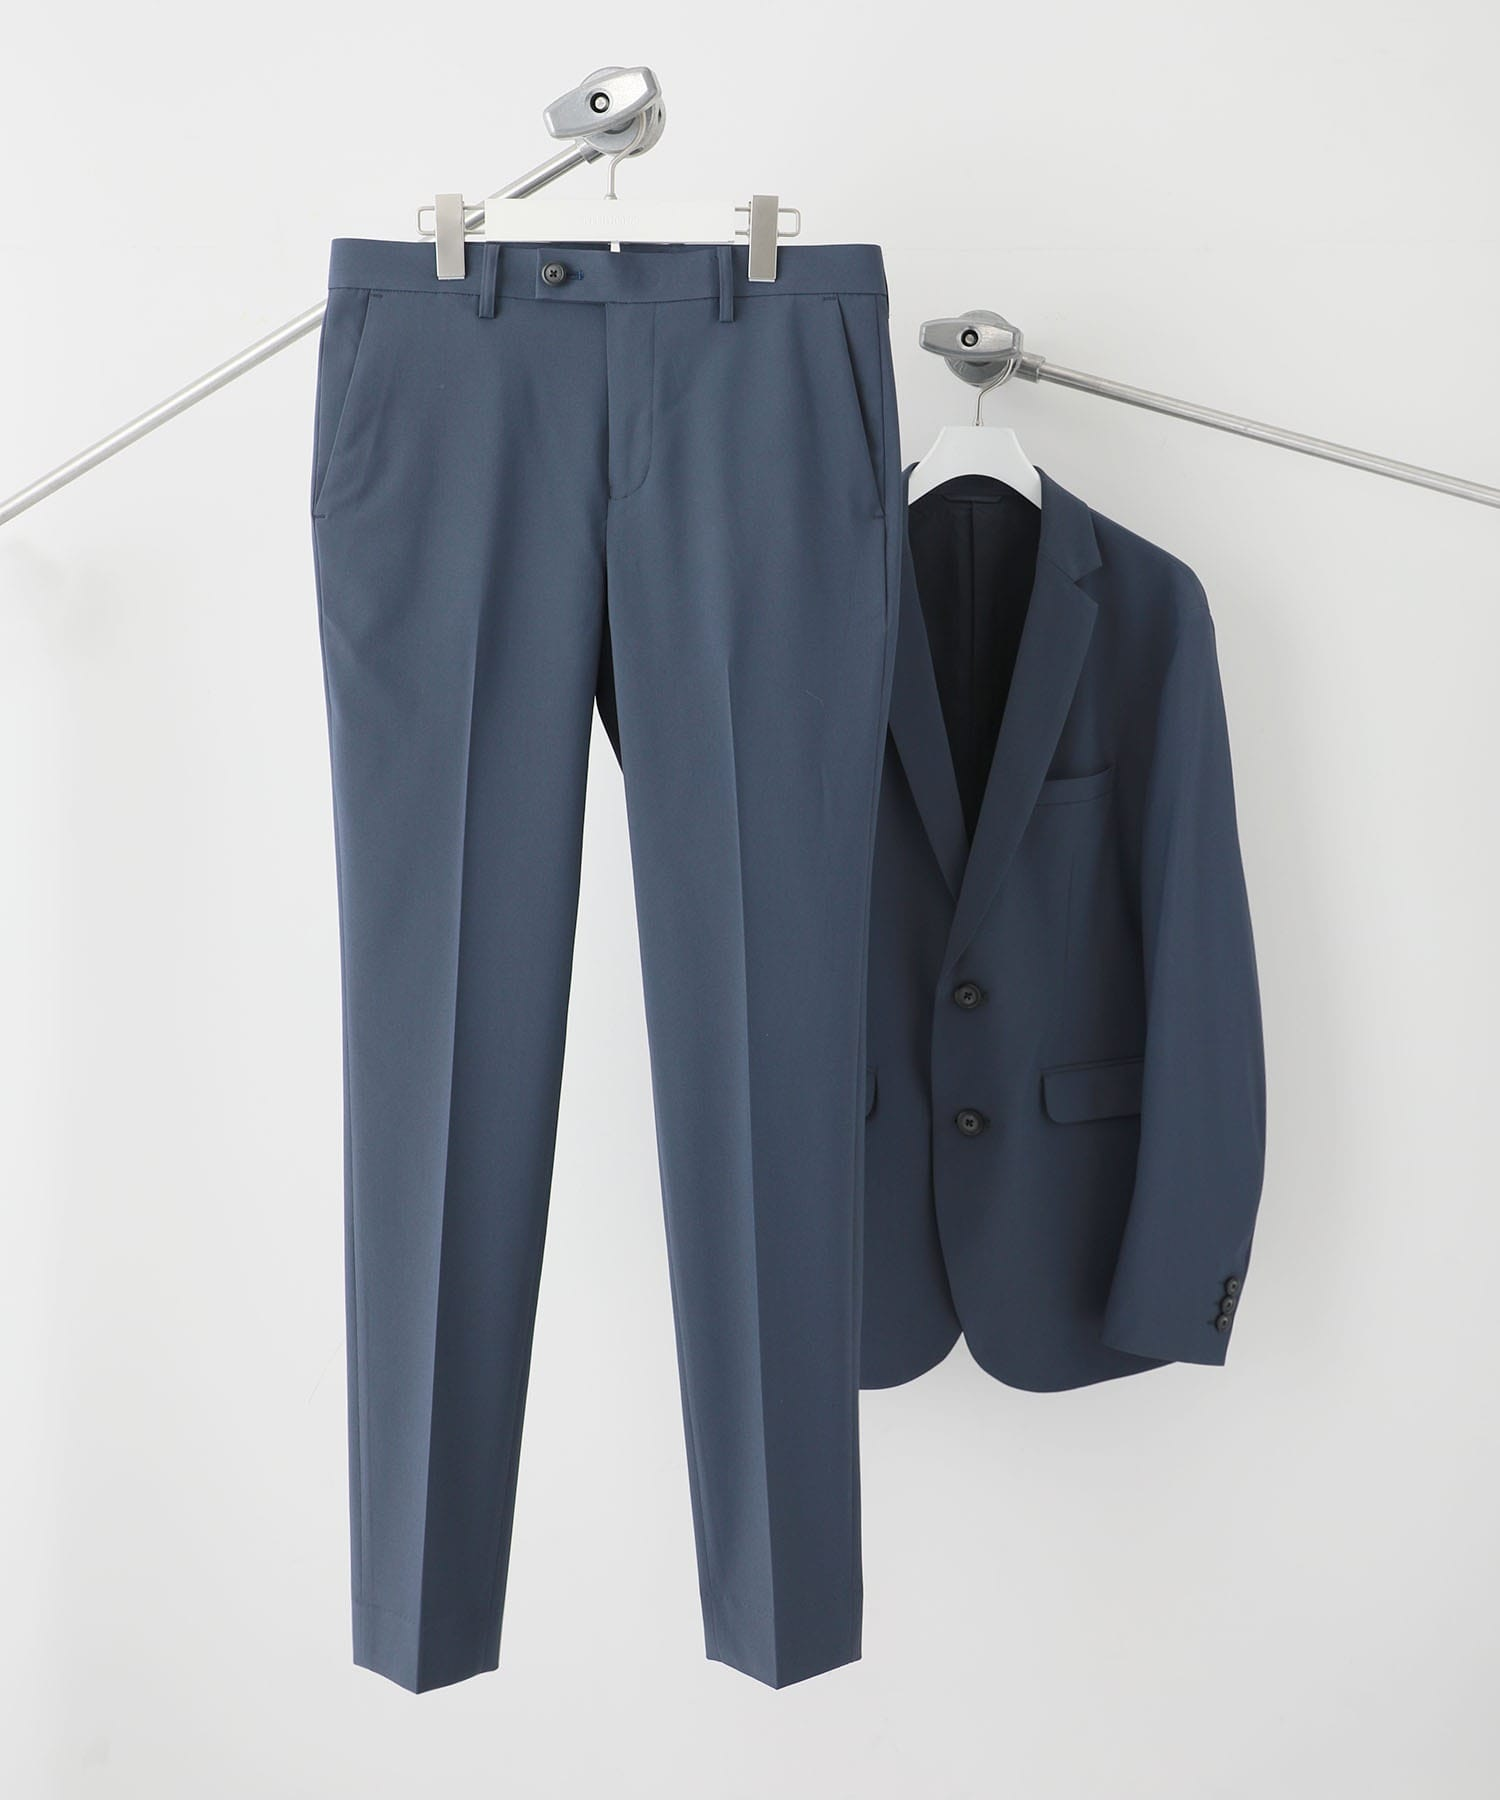 NIFTEC LIGHT SLACKS